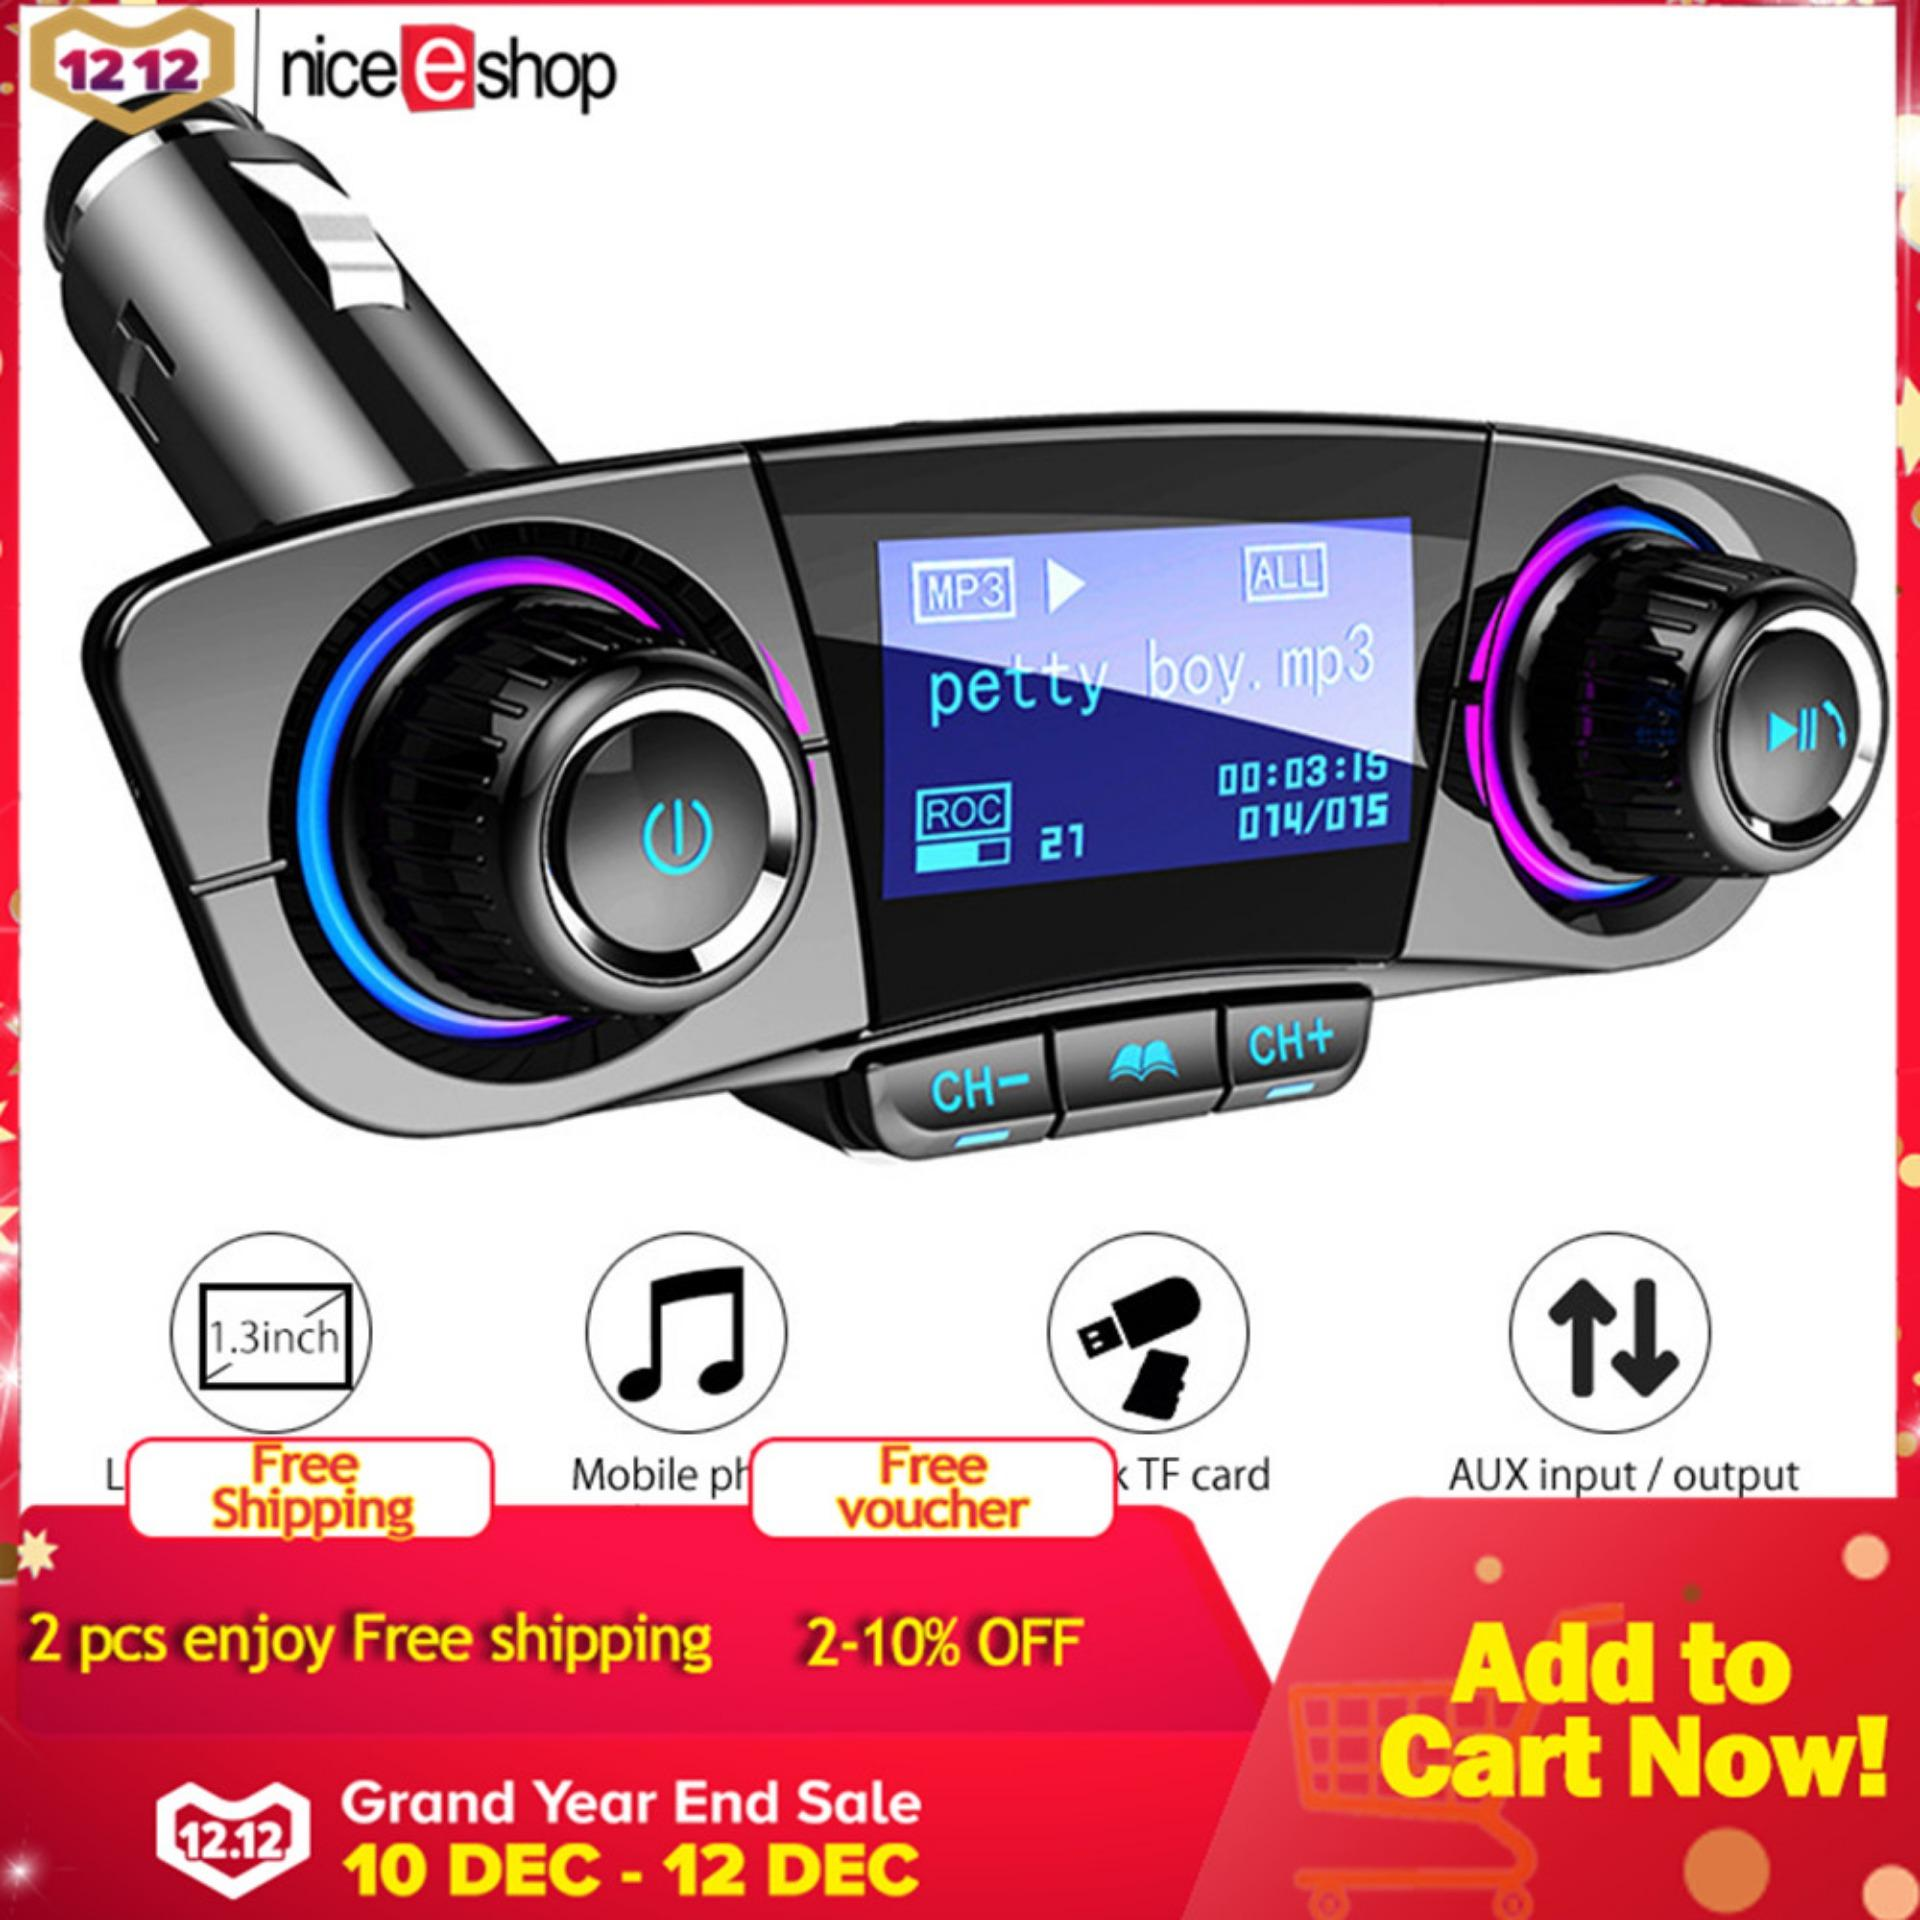 Car Stereo For Sale Cars Online Brands Prices 92 Geo Metro Wiring Diagram Free Picture Shippingniceeshop Bluetooth Kit Handsfree Fm Transmitter Wireless A2dp Aux Audio